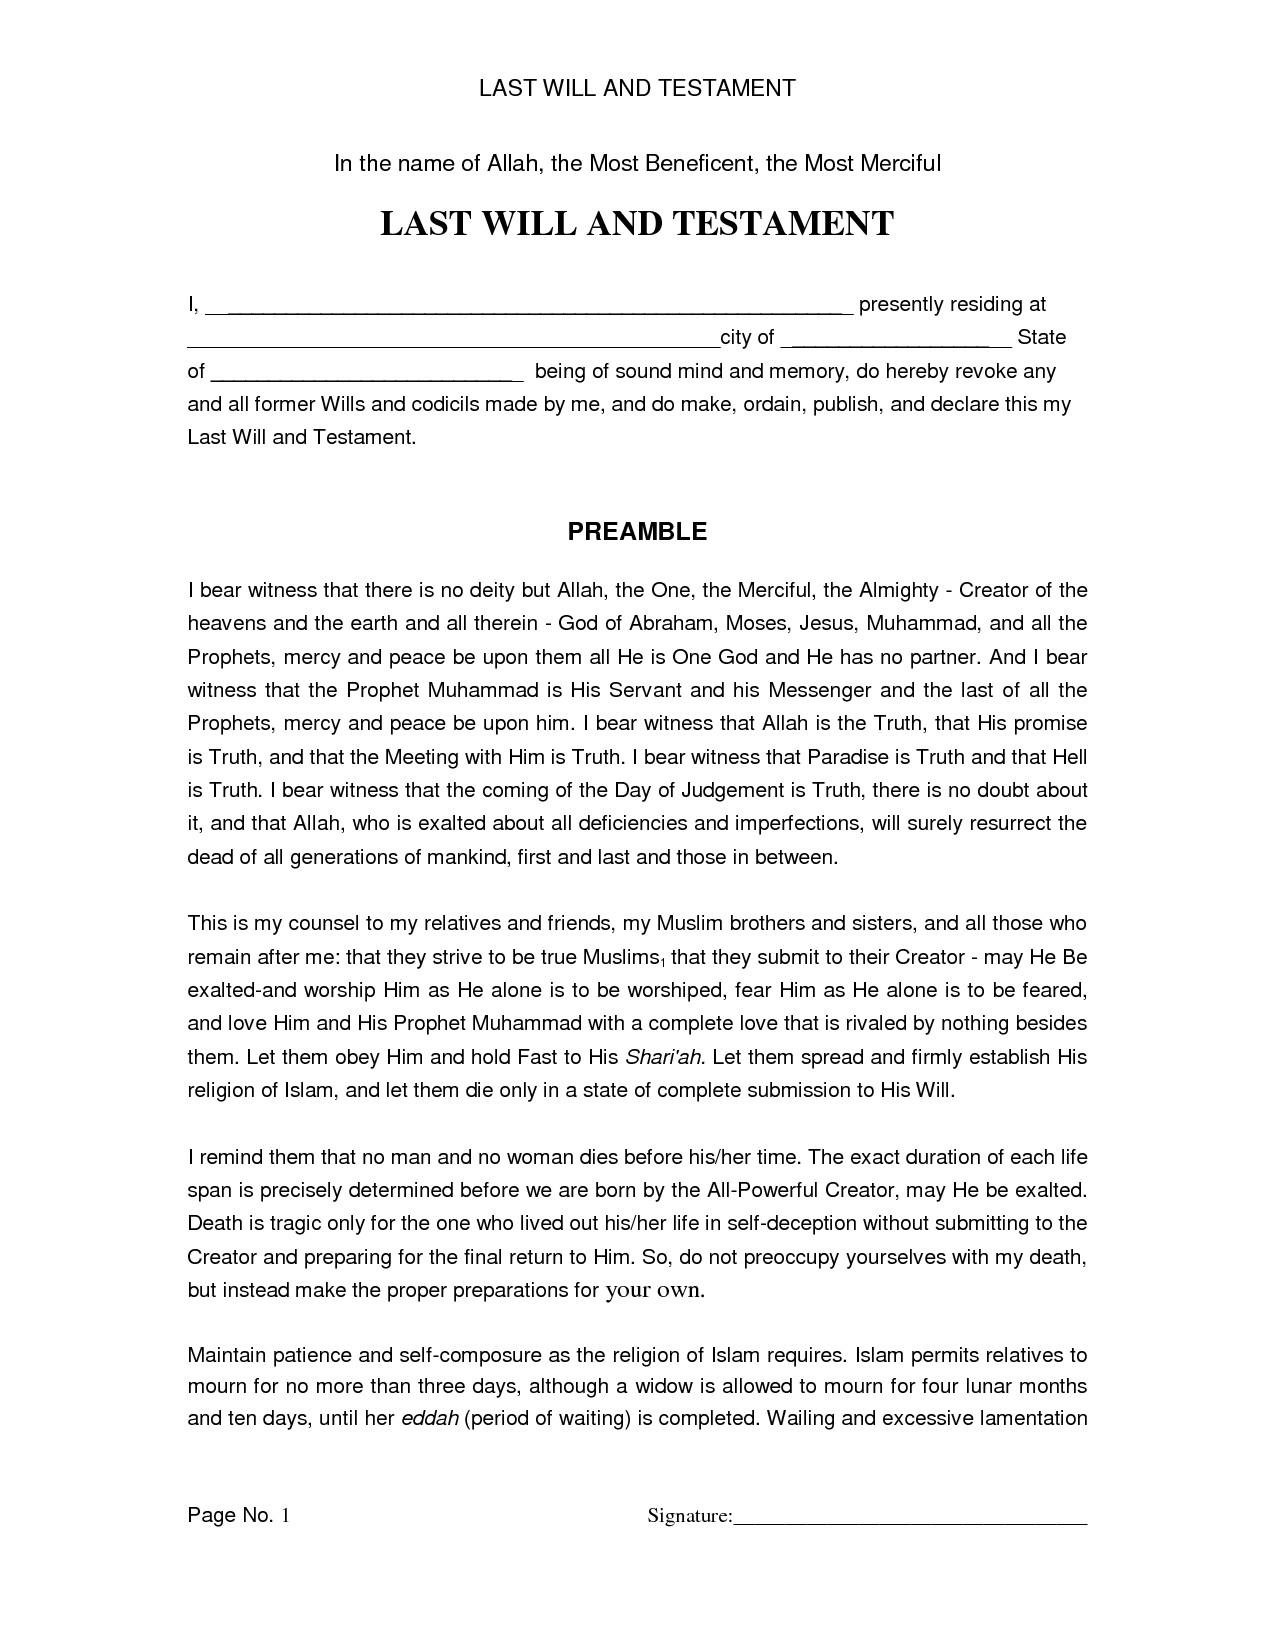 Easy Last Will and Testament Free Template Simple Last Will and Testament Sample Free Printable